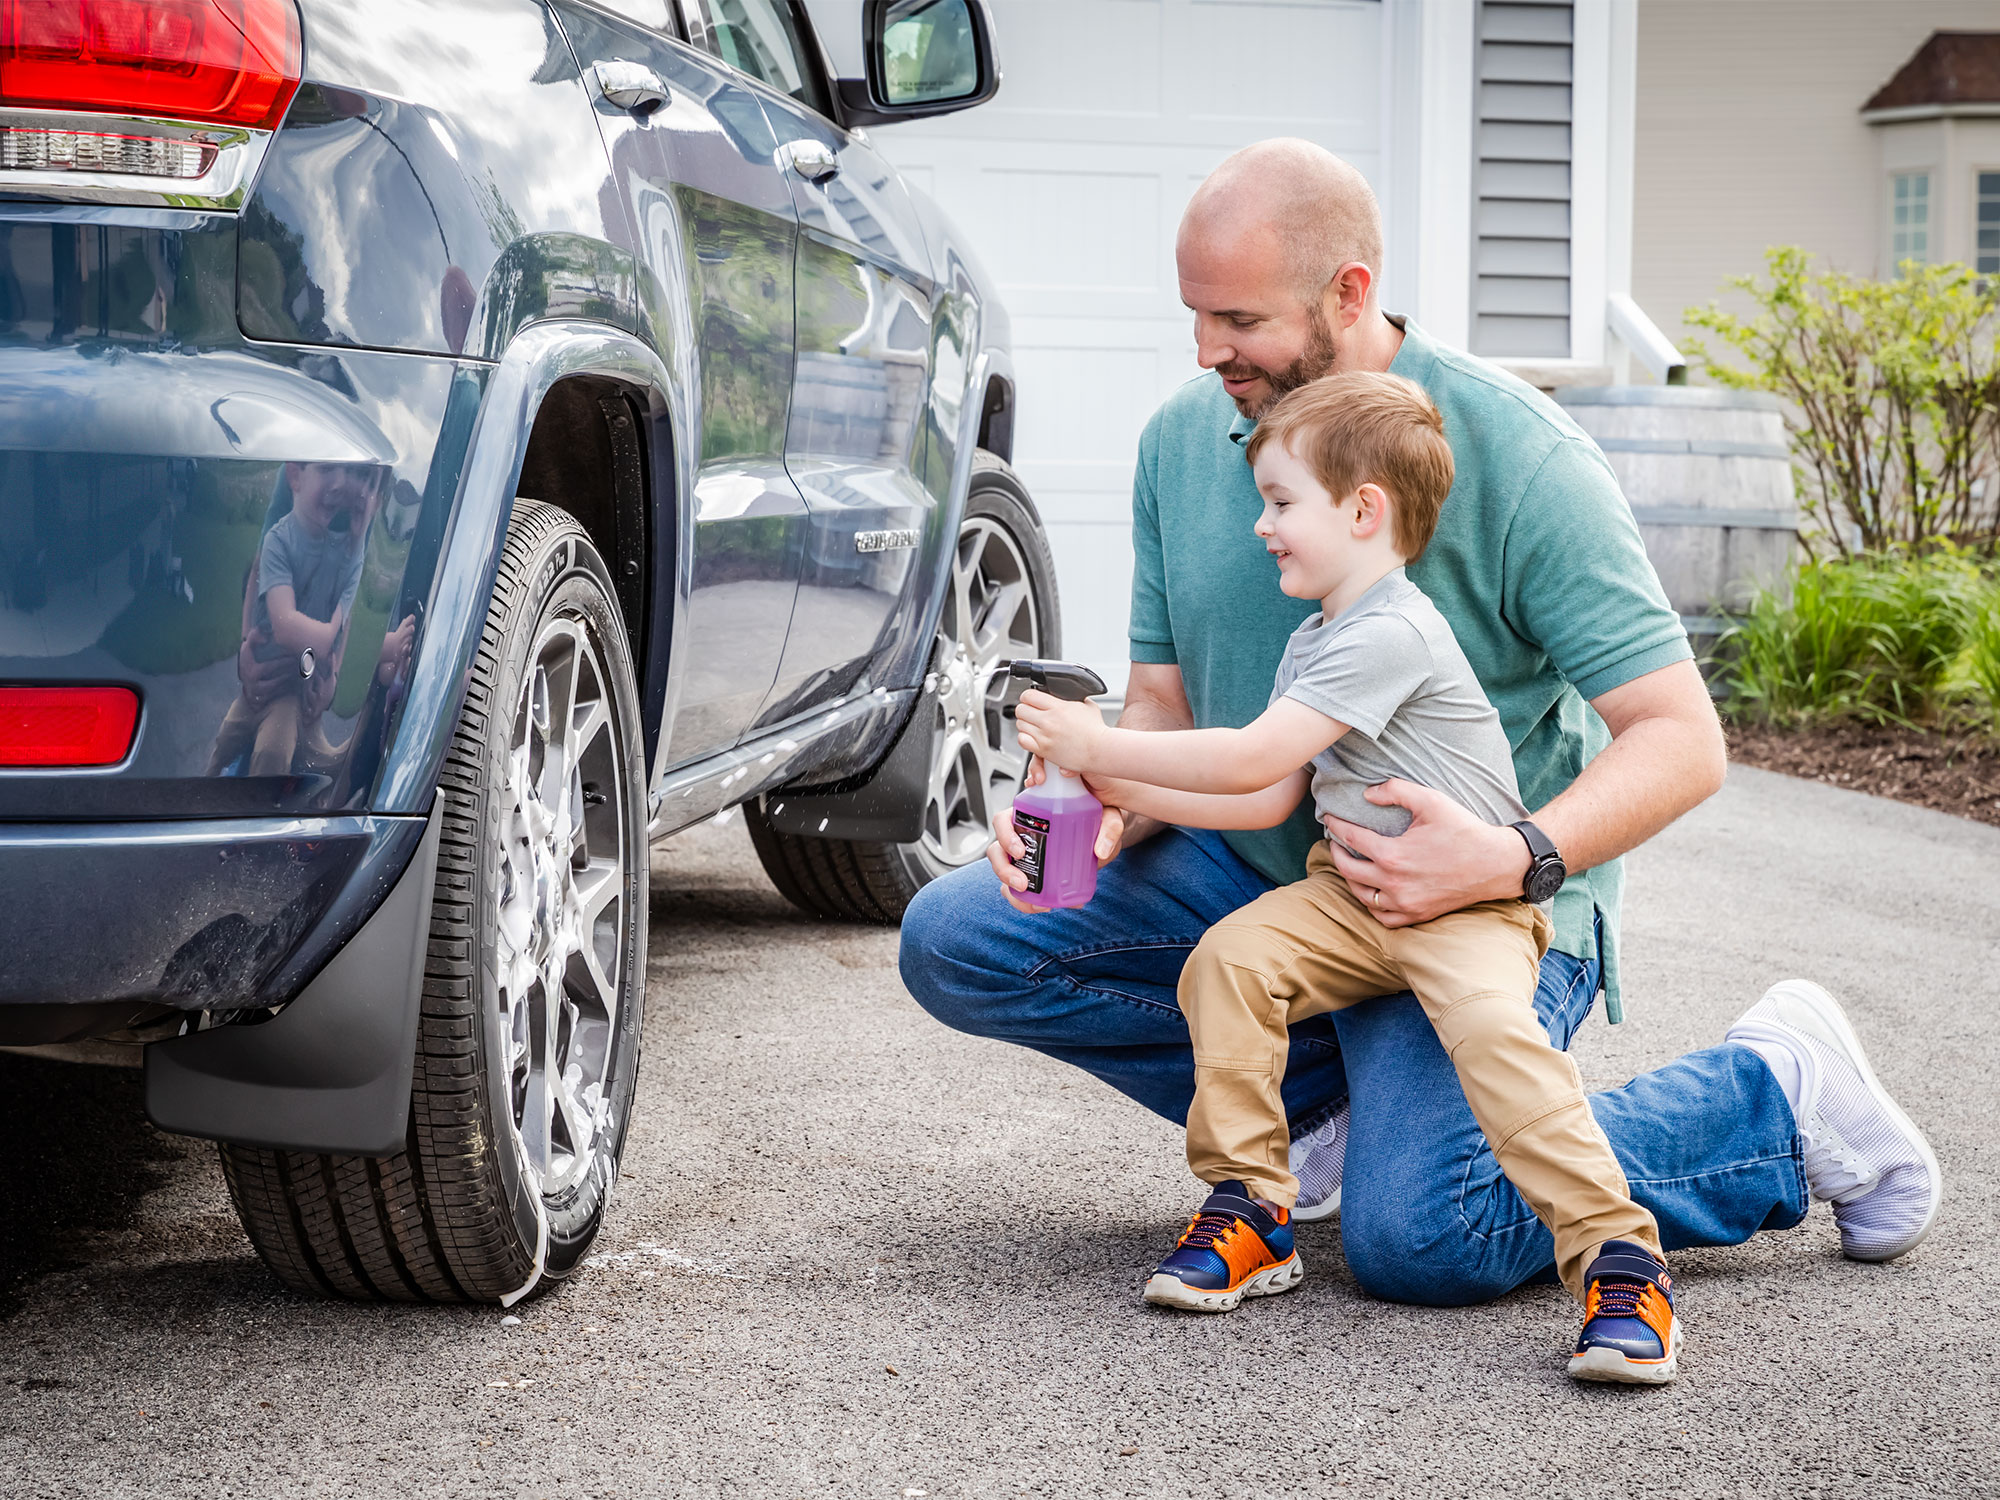 Father and son washing dad's car together.